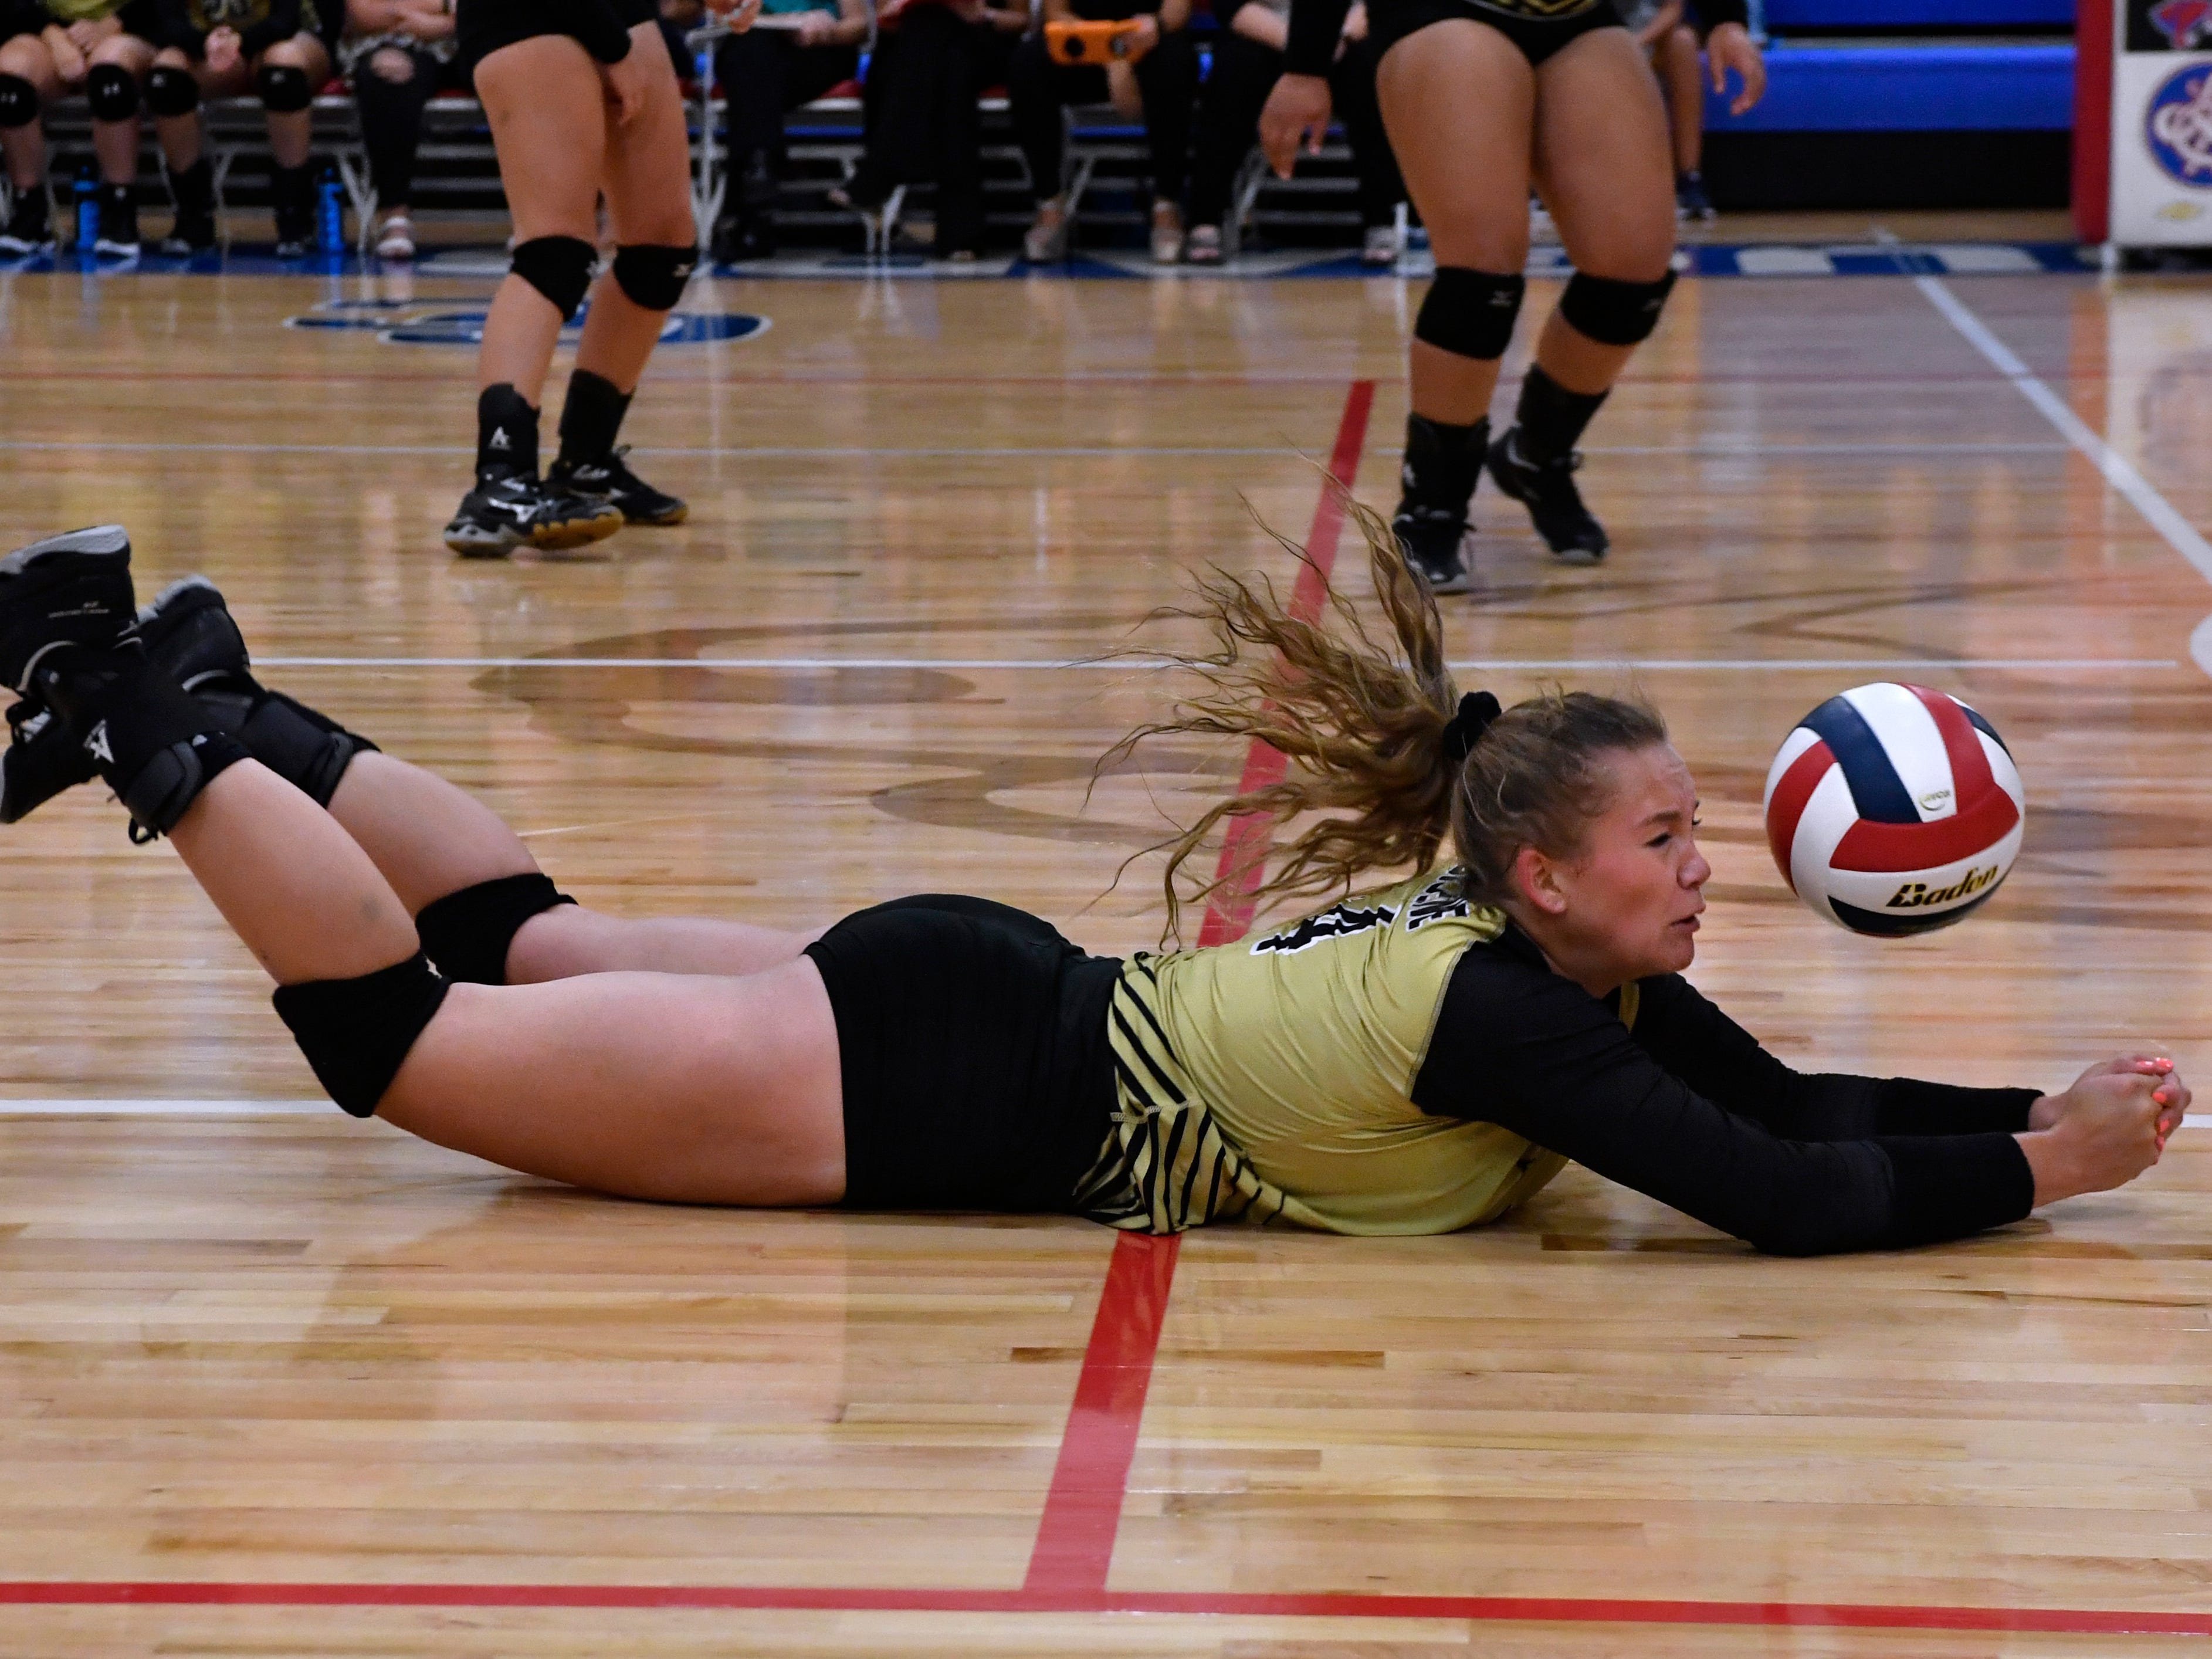 Abilene High's Emilee Rhodes dives for the ball at Cougar Gym. Abilene High won the crosstown volleyball game Tuesday August 7, 2018 against Cooper High in the best-of-five match, 25-21, 16-25, 25-20, 17-25, 15-7.